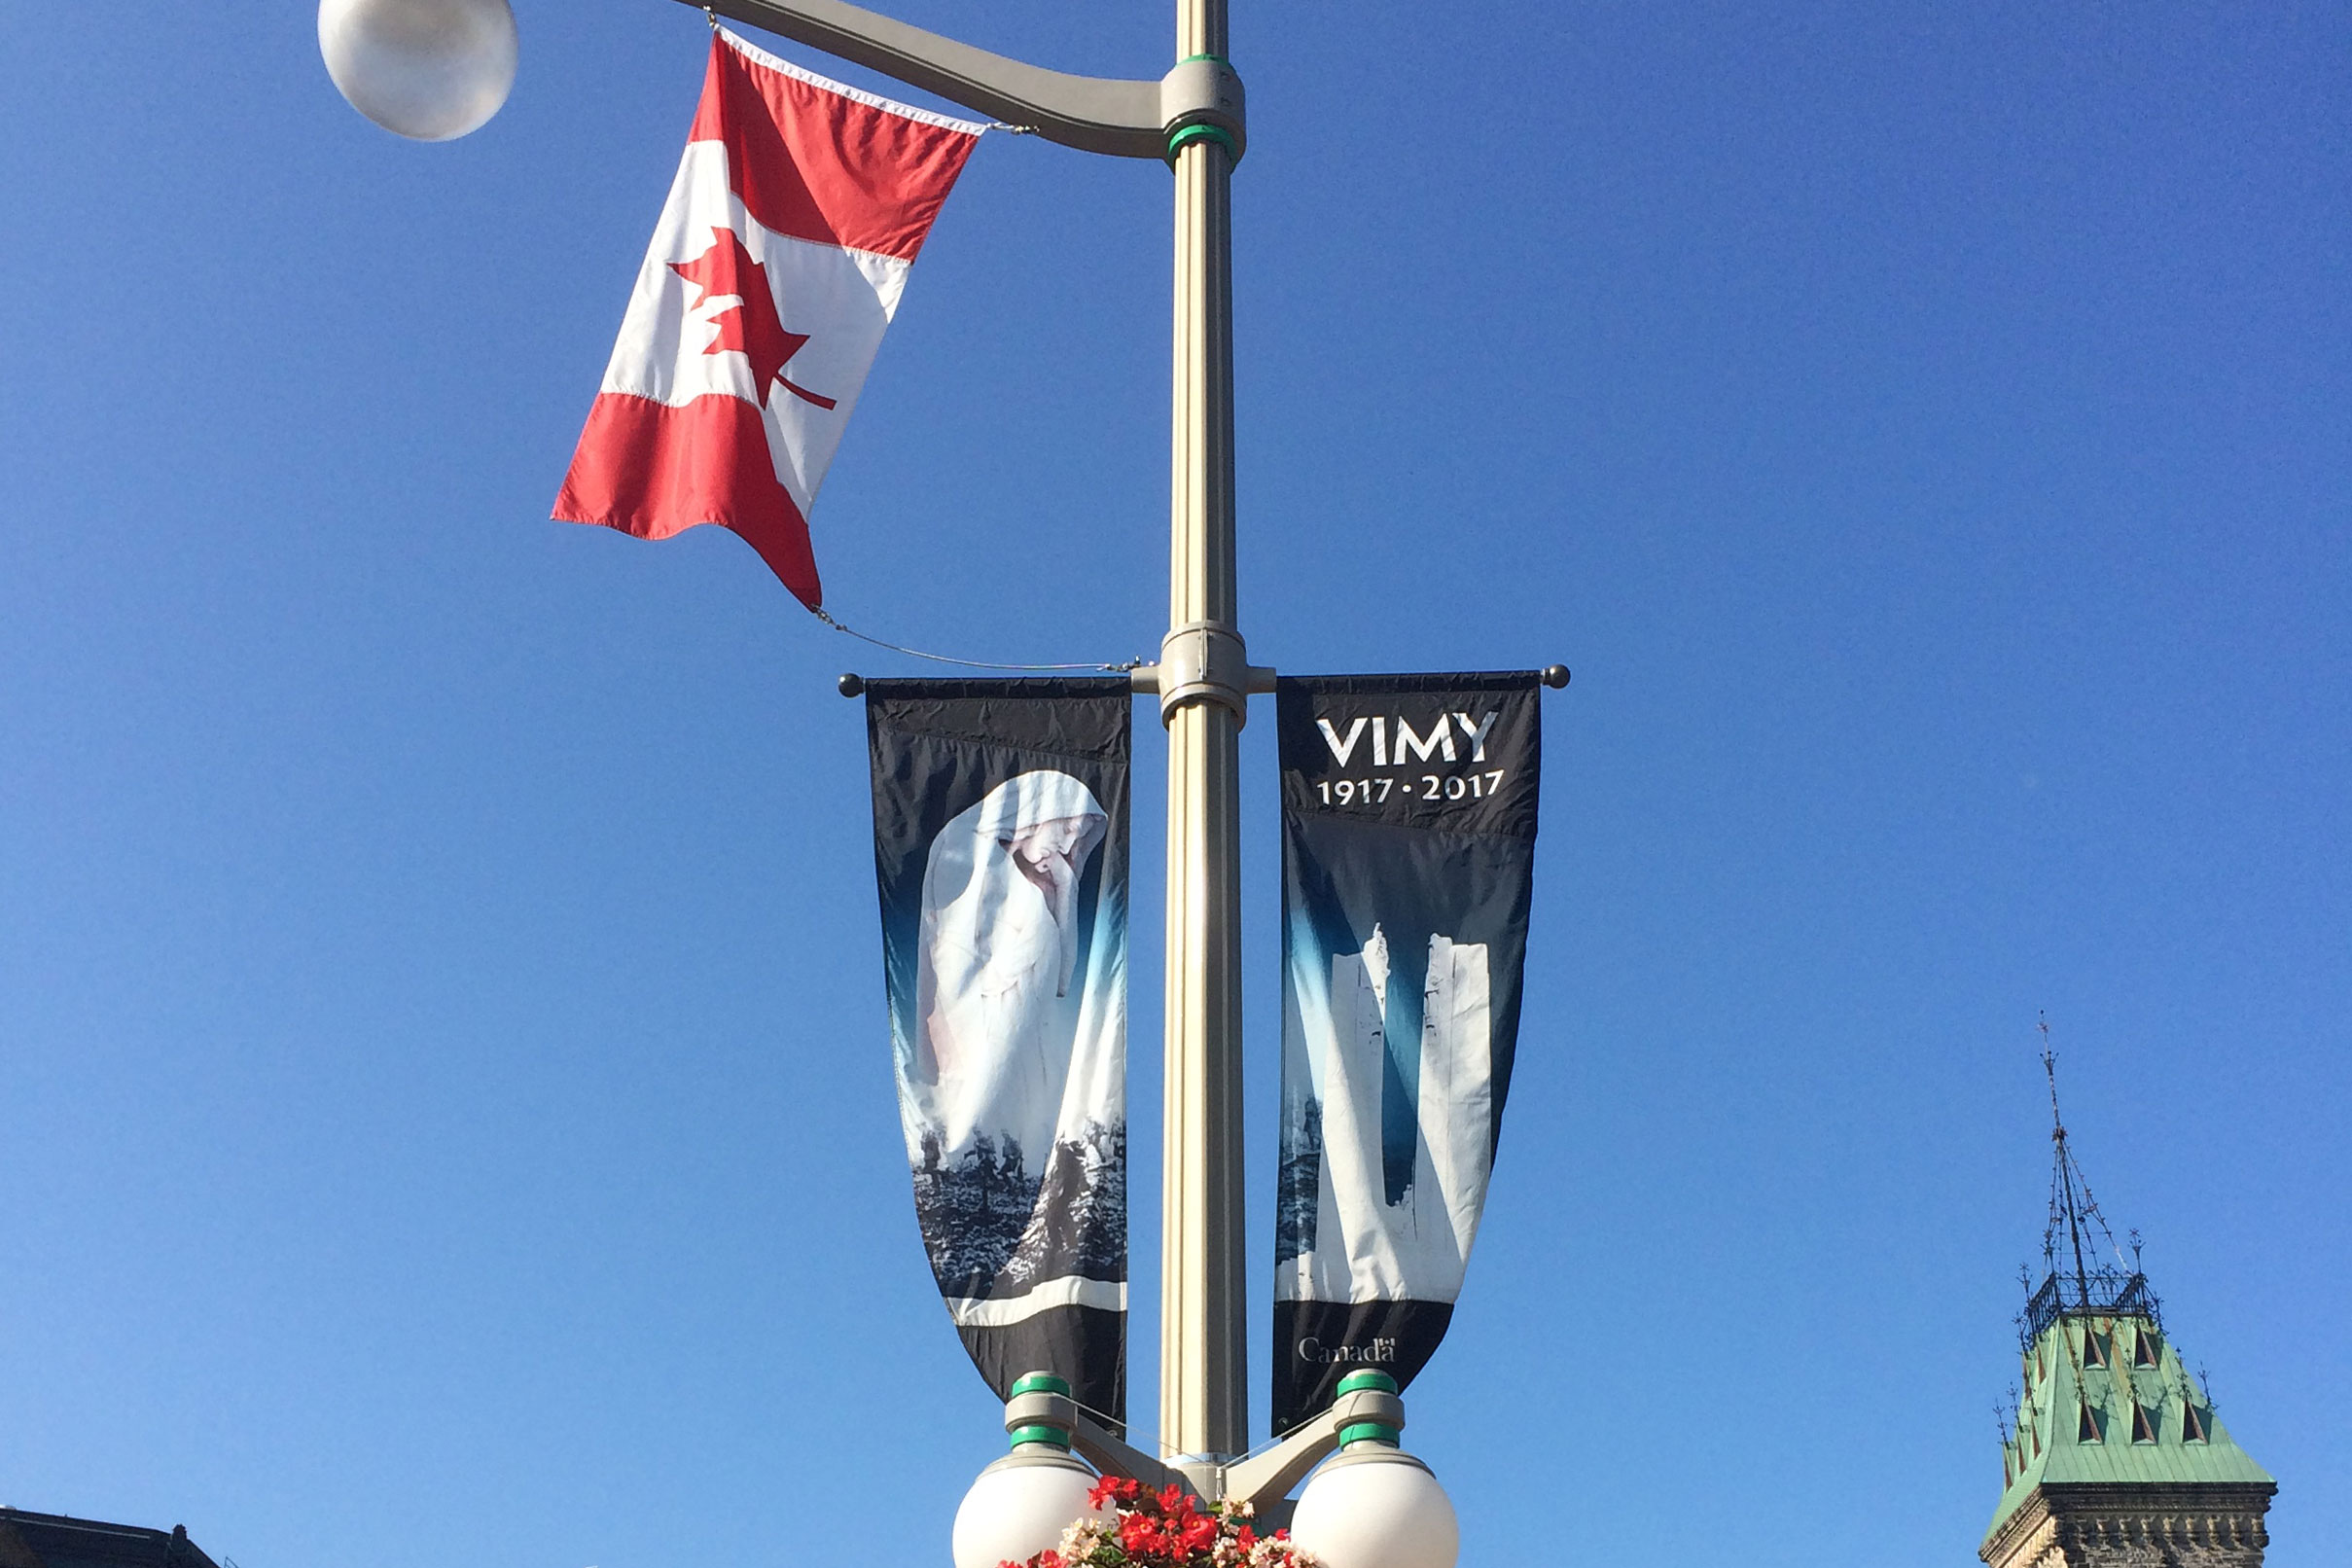 Vimy_street_banner_cropped2.jpg